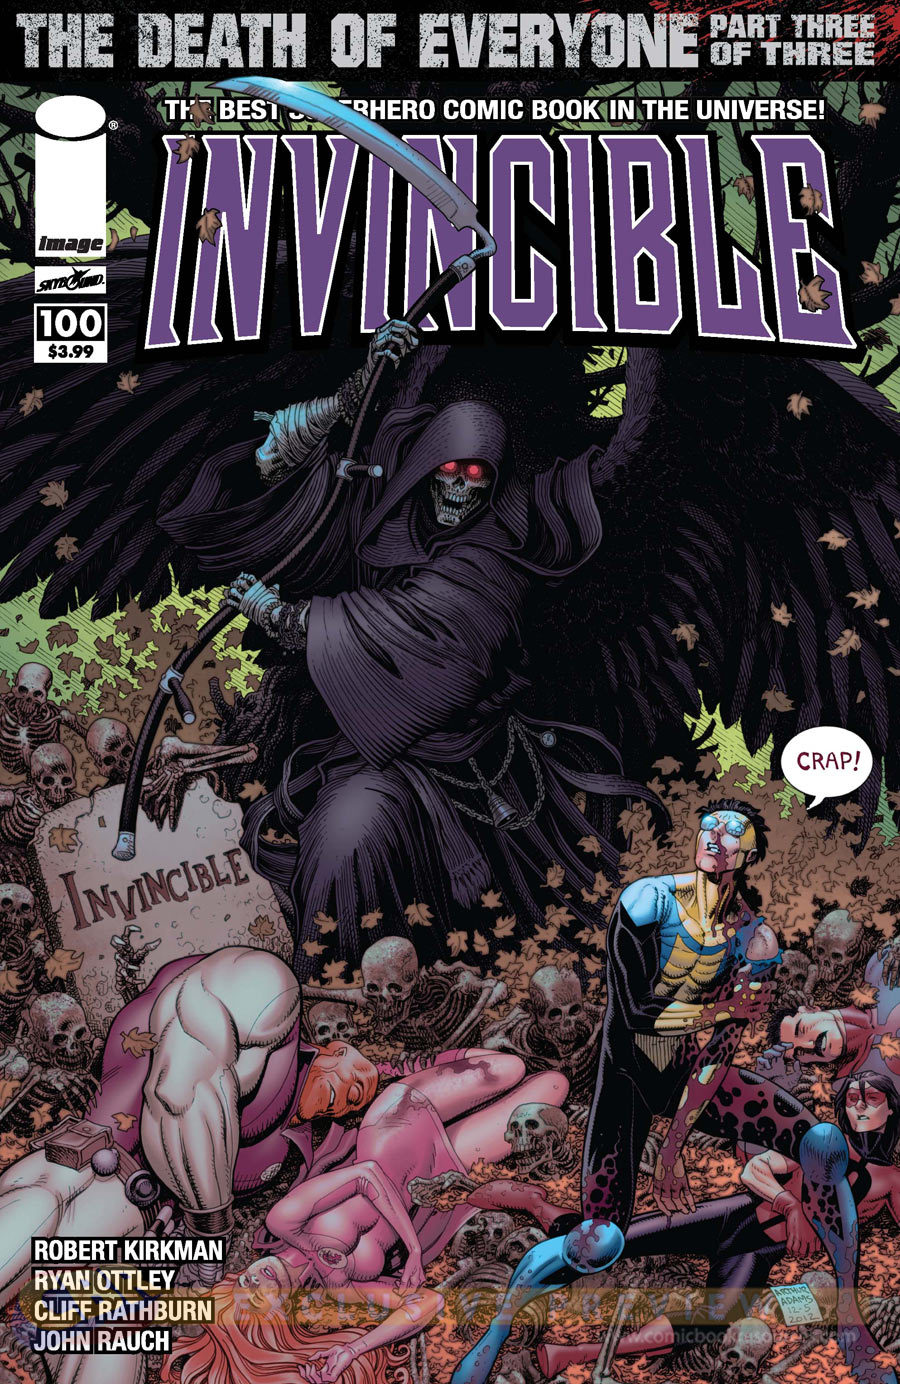 This is the variant cover for Invincible #100, drawn by Art Adams.